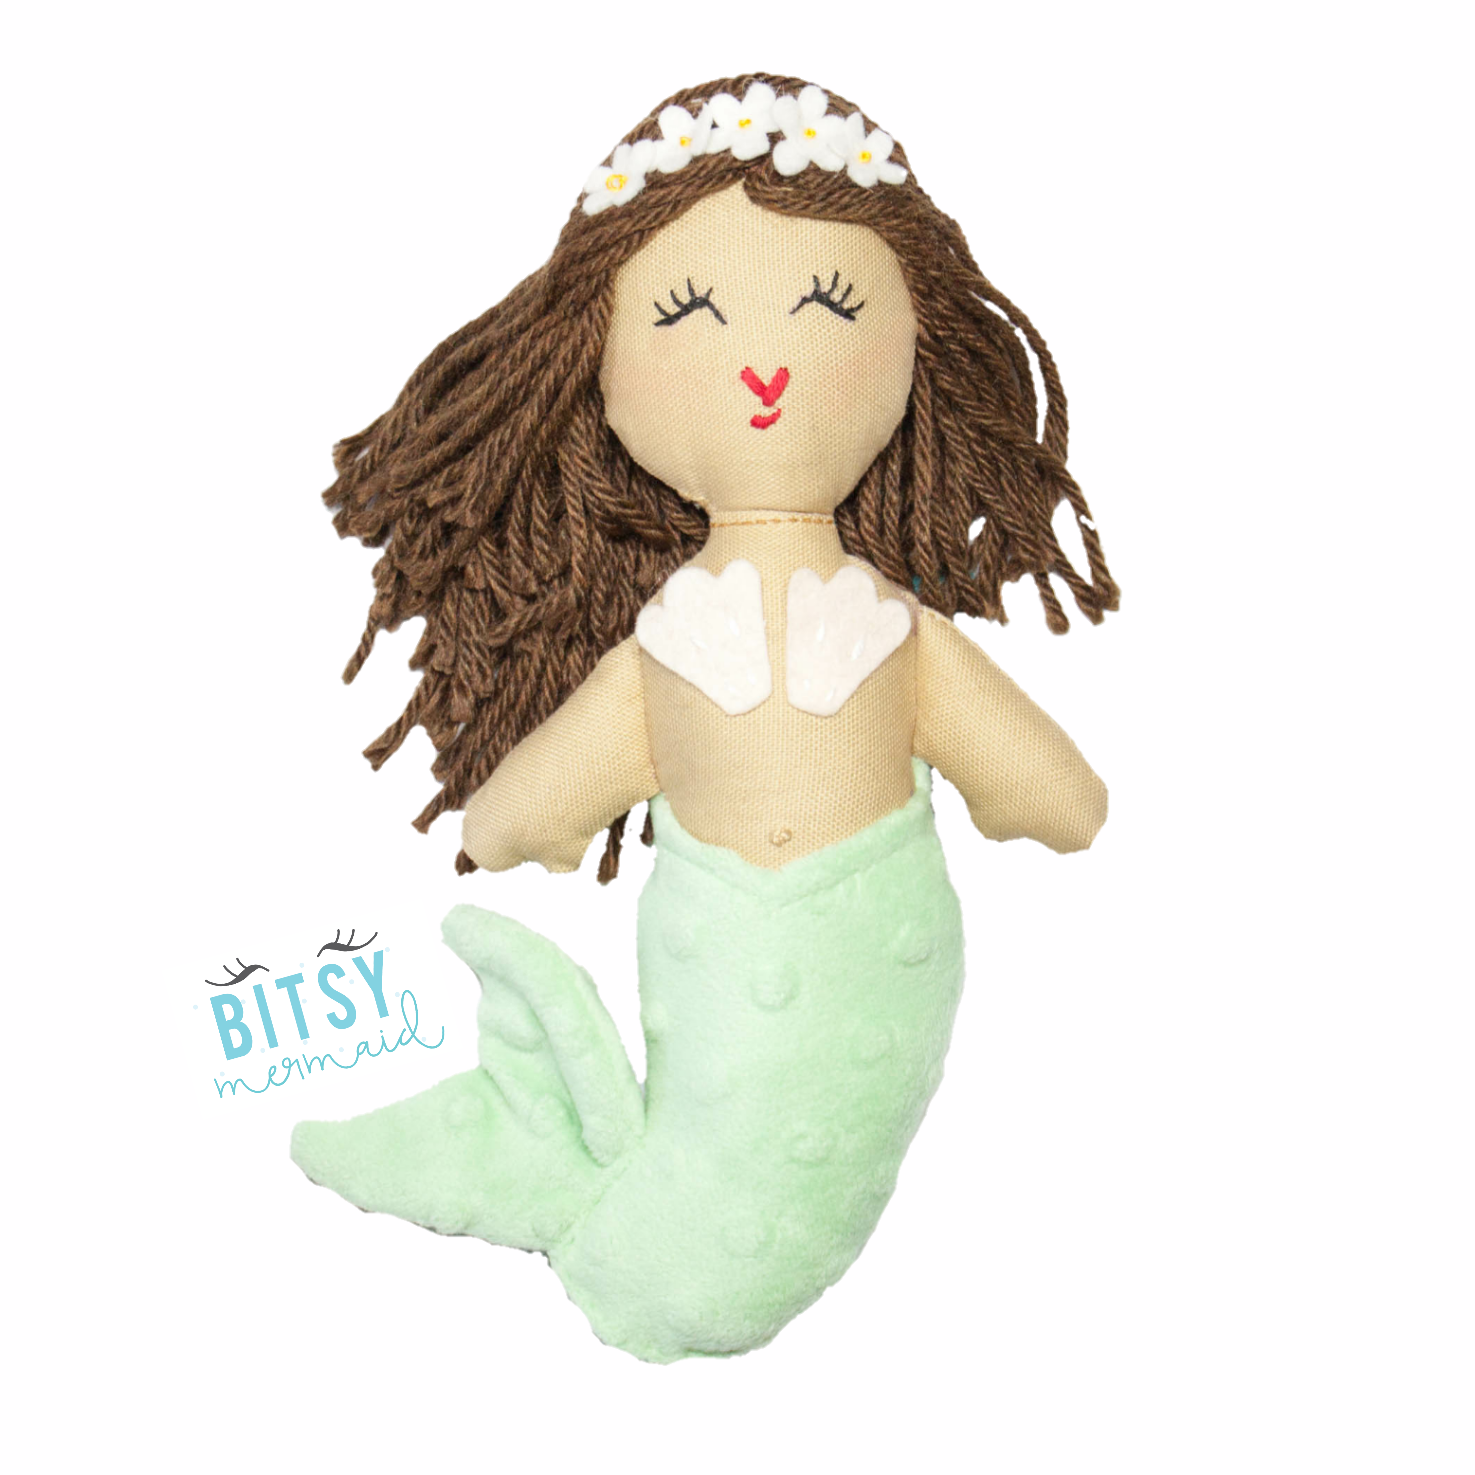 Molly the Mermaid (ships in 1-2 weeks)